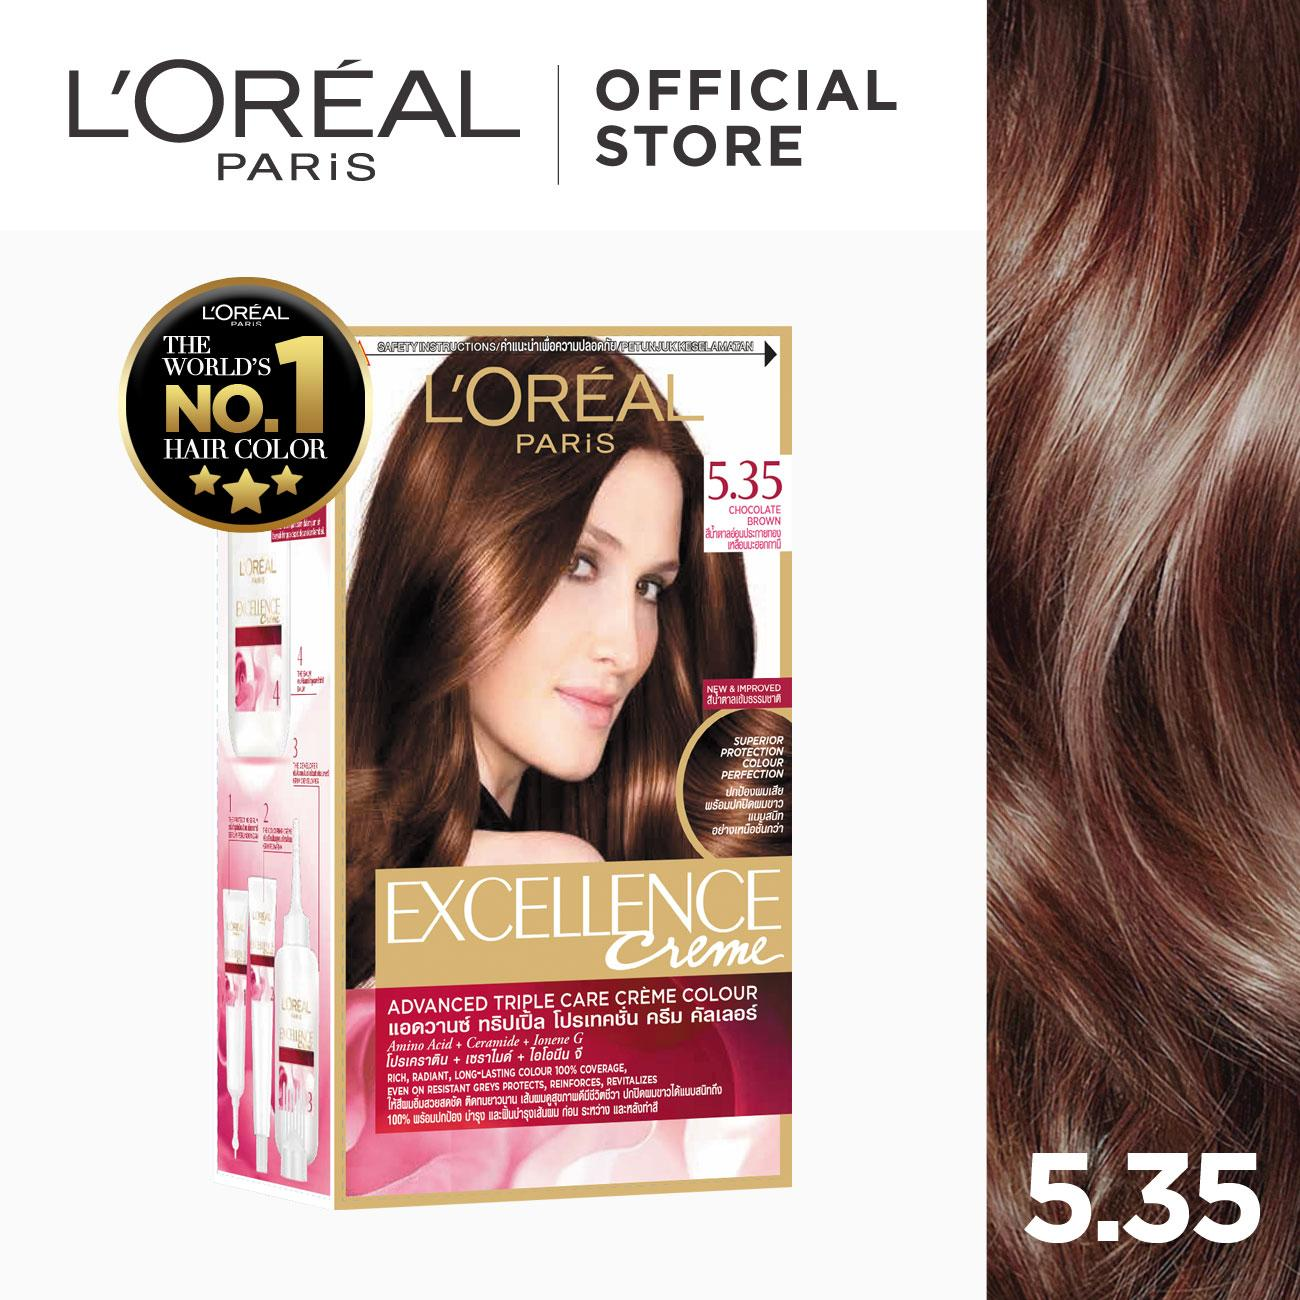 Excellence Crème Hair Color - 5.35 Chocolate Brown [worlds No.1] By Loréal Paris [w/ Protective Serum & Conditioner] By Loreal.